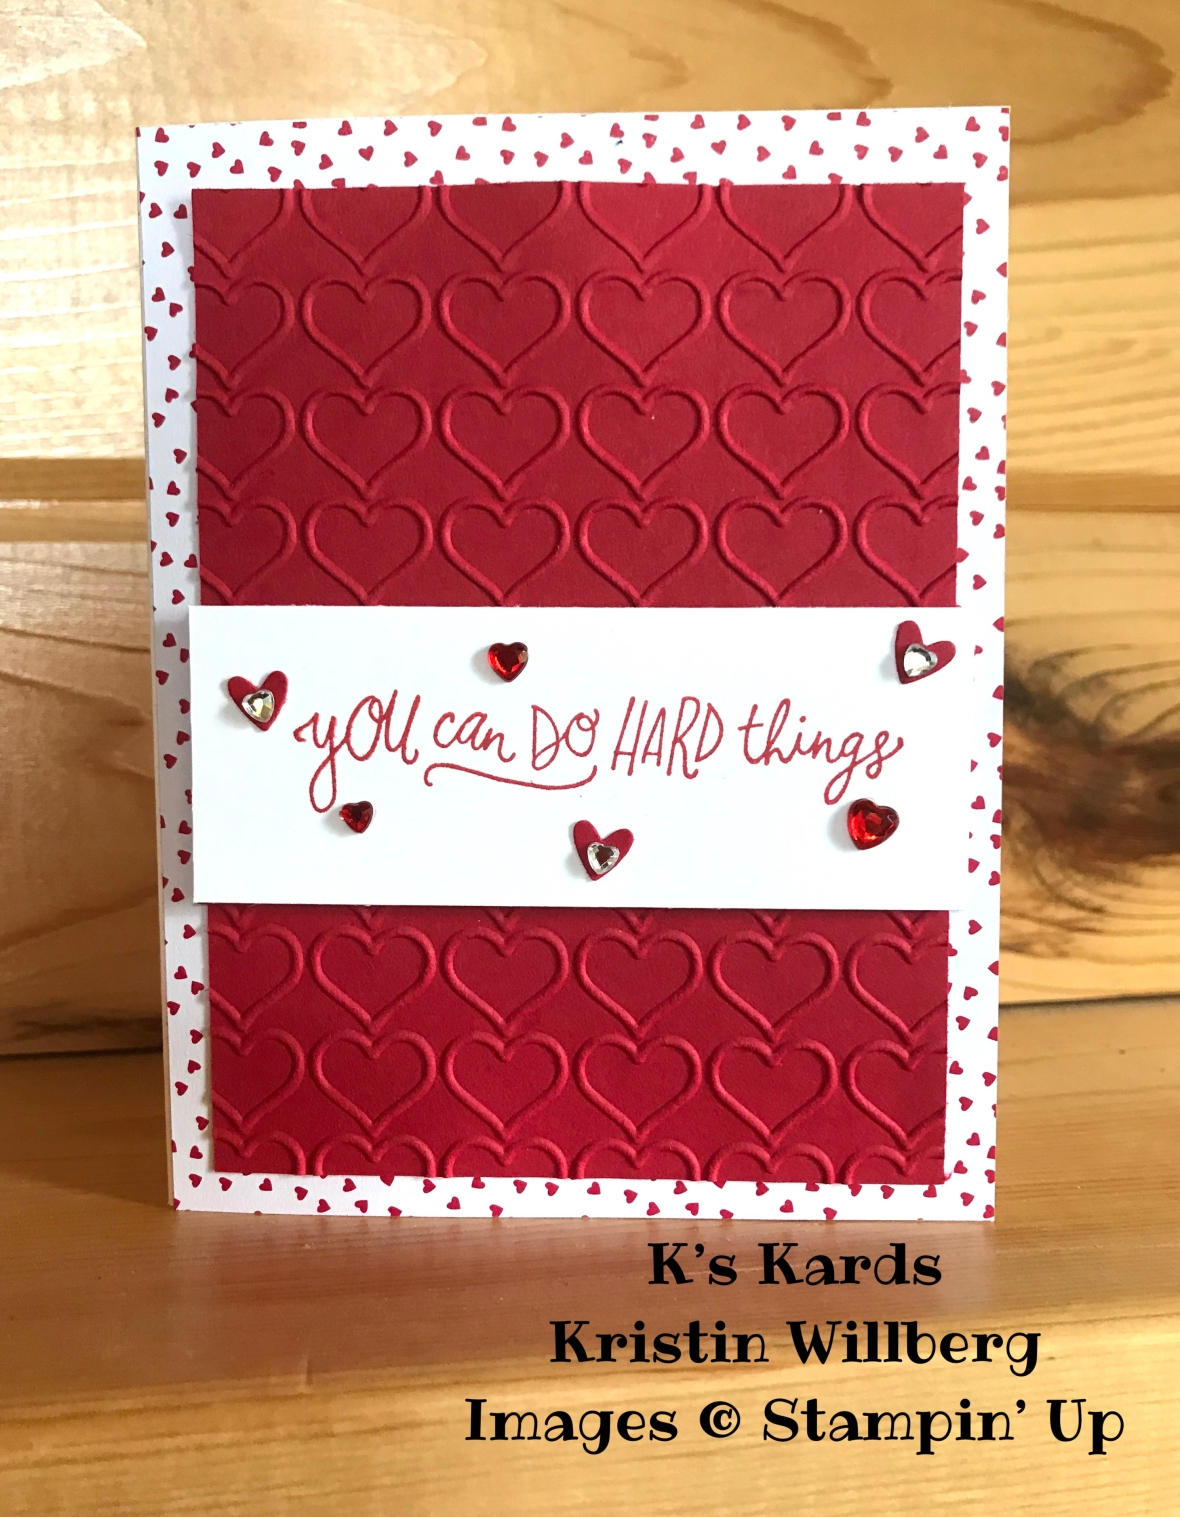 Sunny Days - Happy Heart - Owl Punch - K's Kards - Kristin Willberg - Stampin' Up